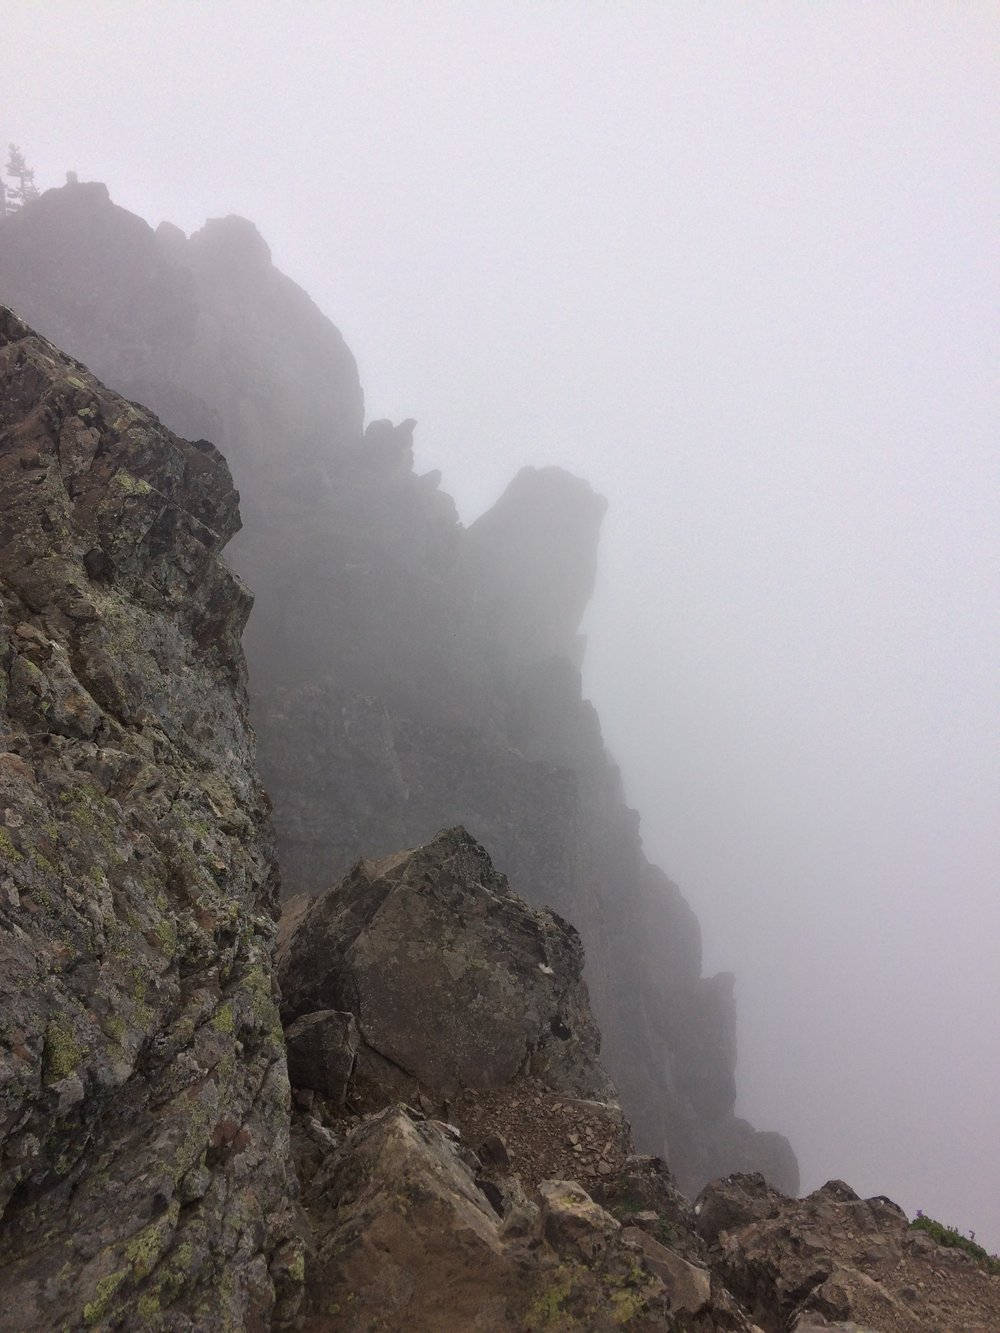 On a clear day, one has perfect 360 degree views from the summit of Ellinor, but on a cloudy day, one can only see the sharp drop-offs near the summit block.